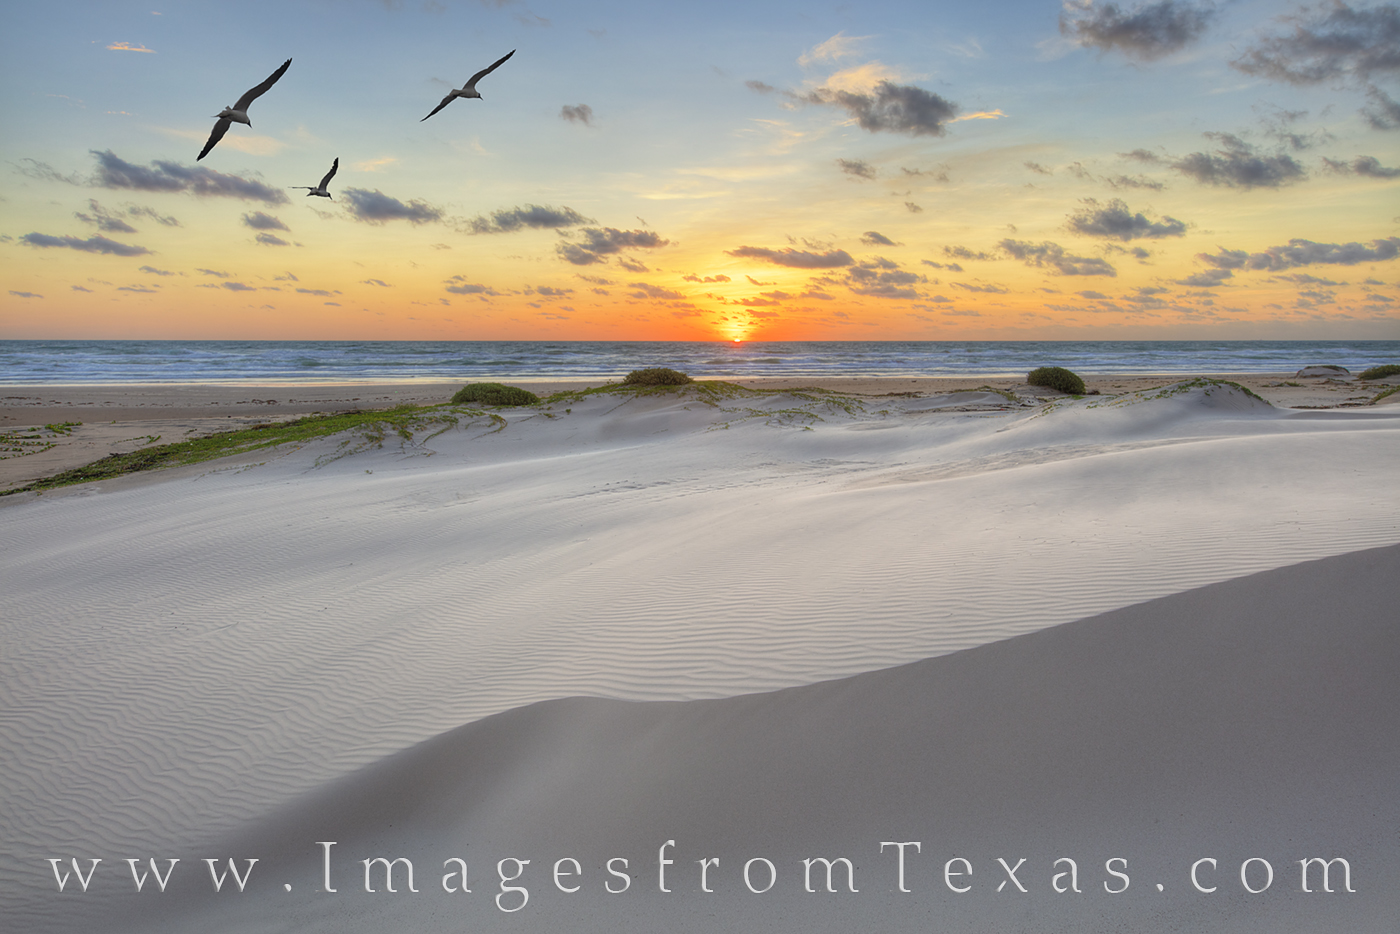 south padre island, sunrise, seagulls, sand dunes, south texas, port isable, beach, sand, sun, morning, texas coast, gulf of mexico, photo